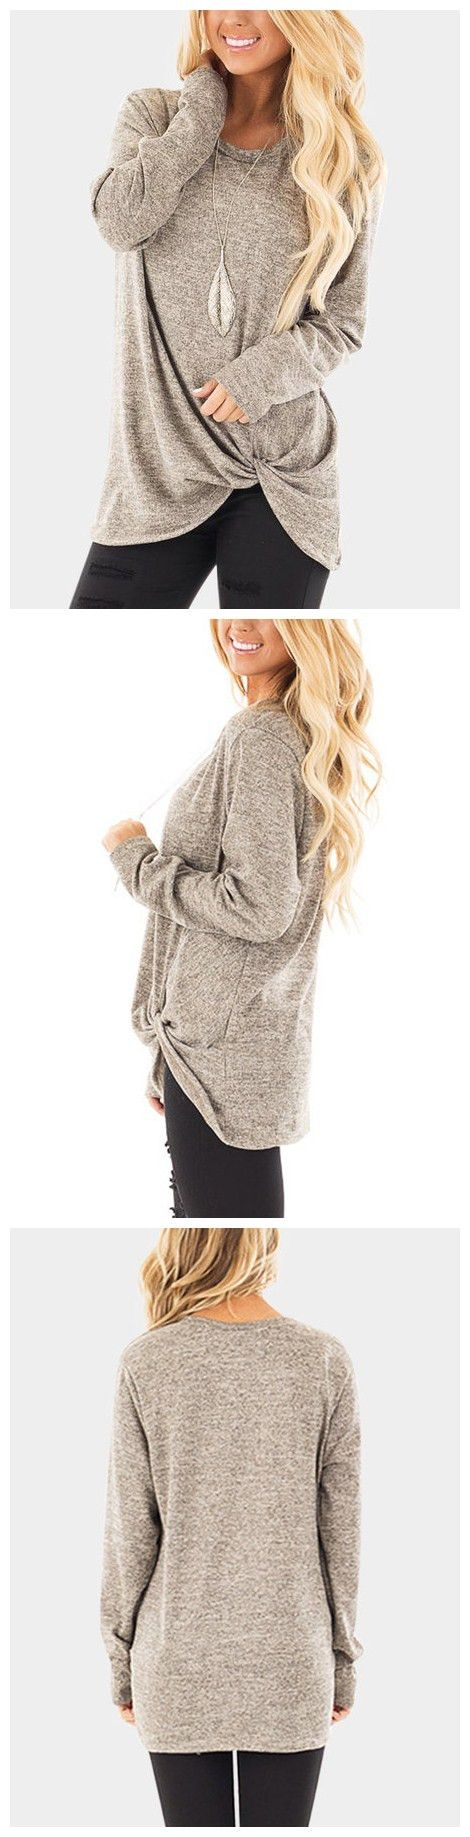 Taupe Crossed Front Design Plain Round Neck Long Sleeves T-shirts